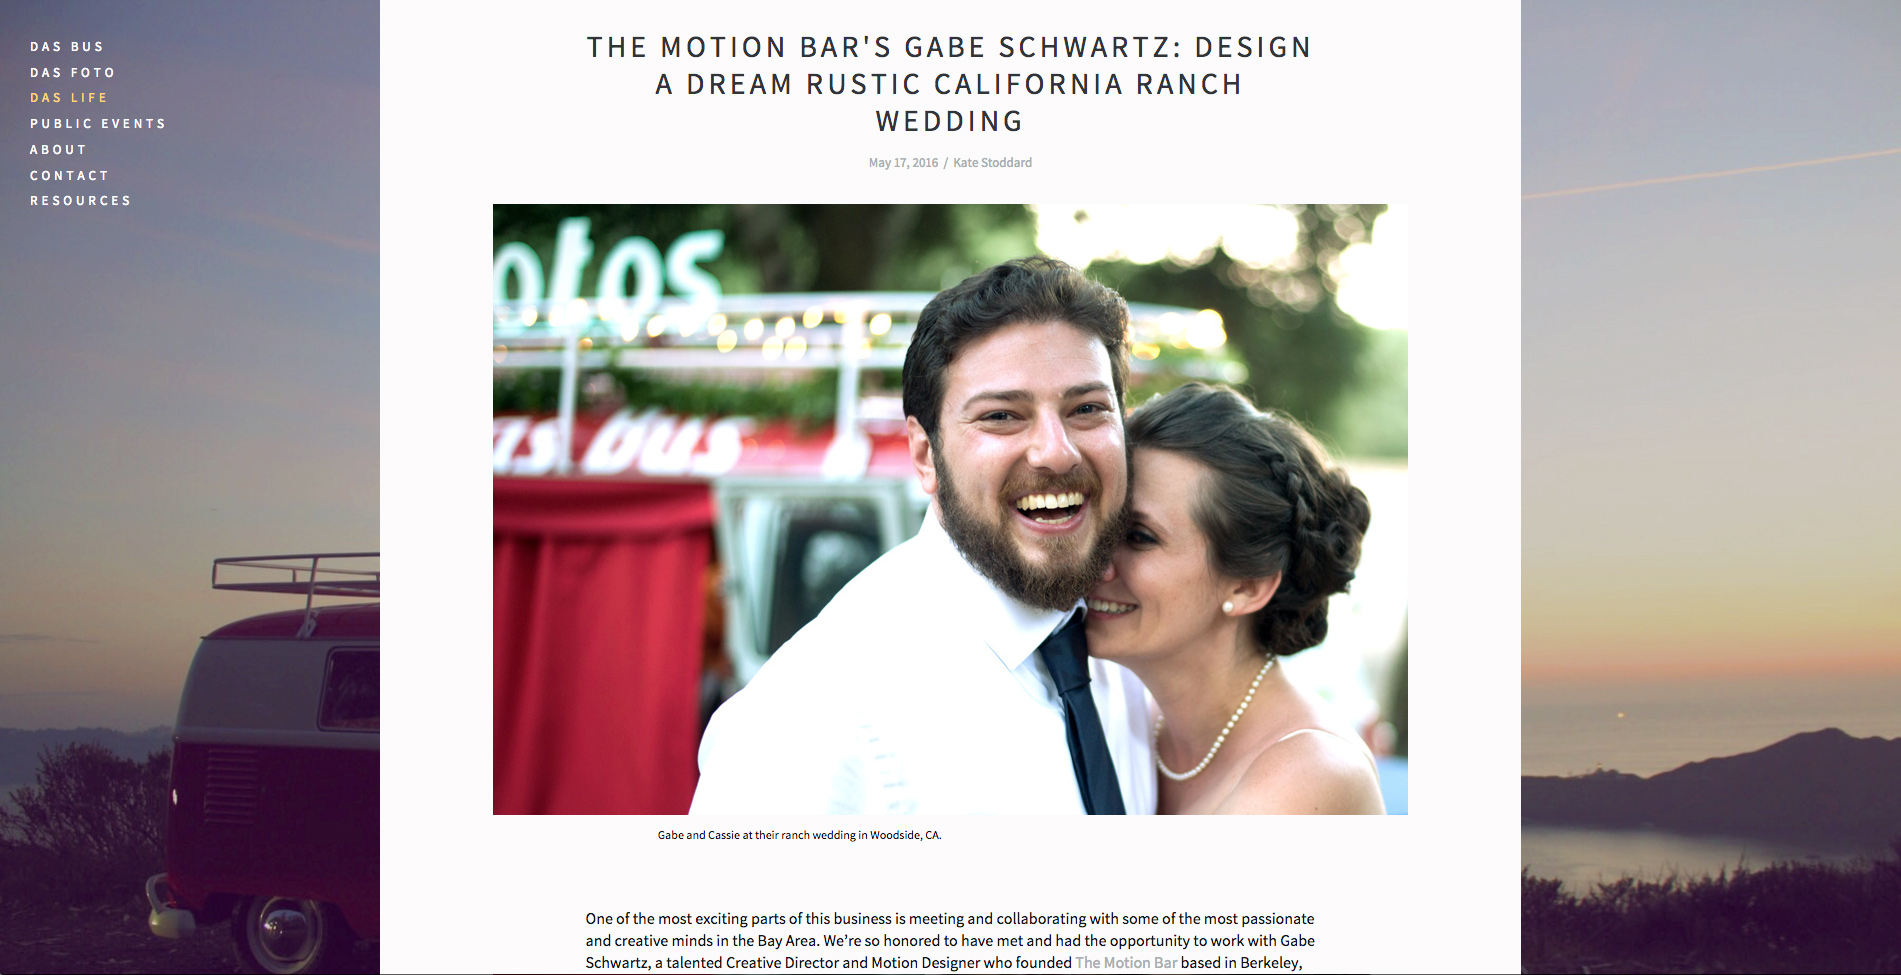 The Motion Bar TMB Das Bus Blog Interview and Write up Dream rustic california wedding